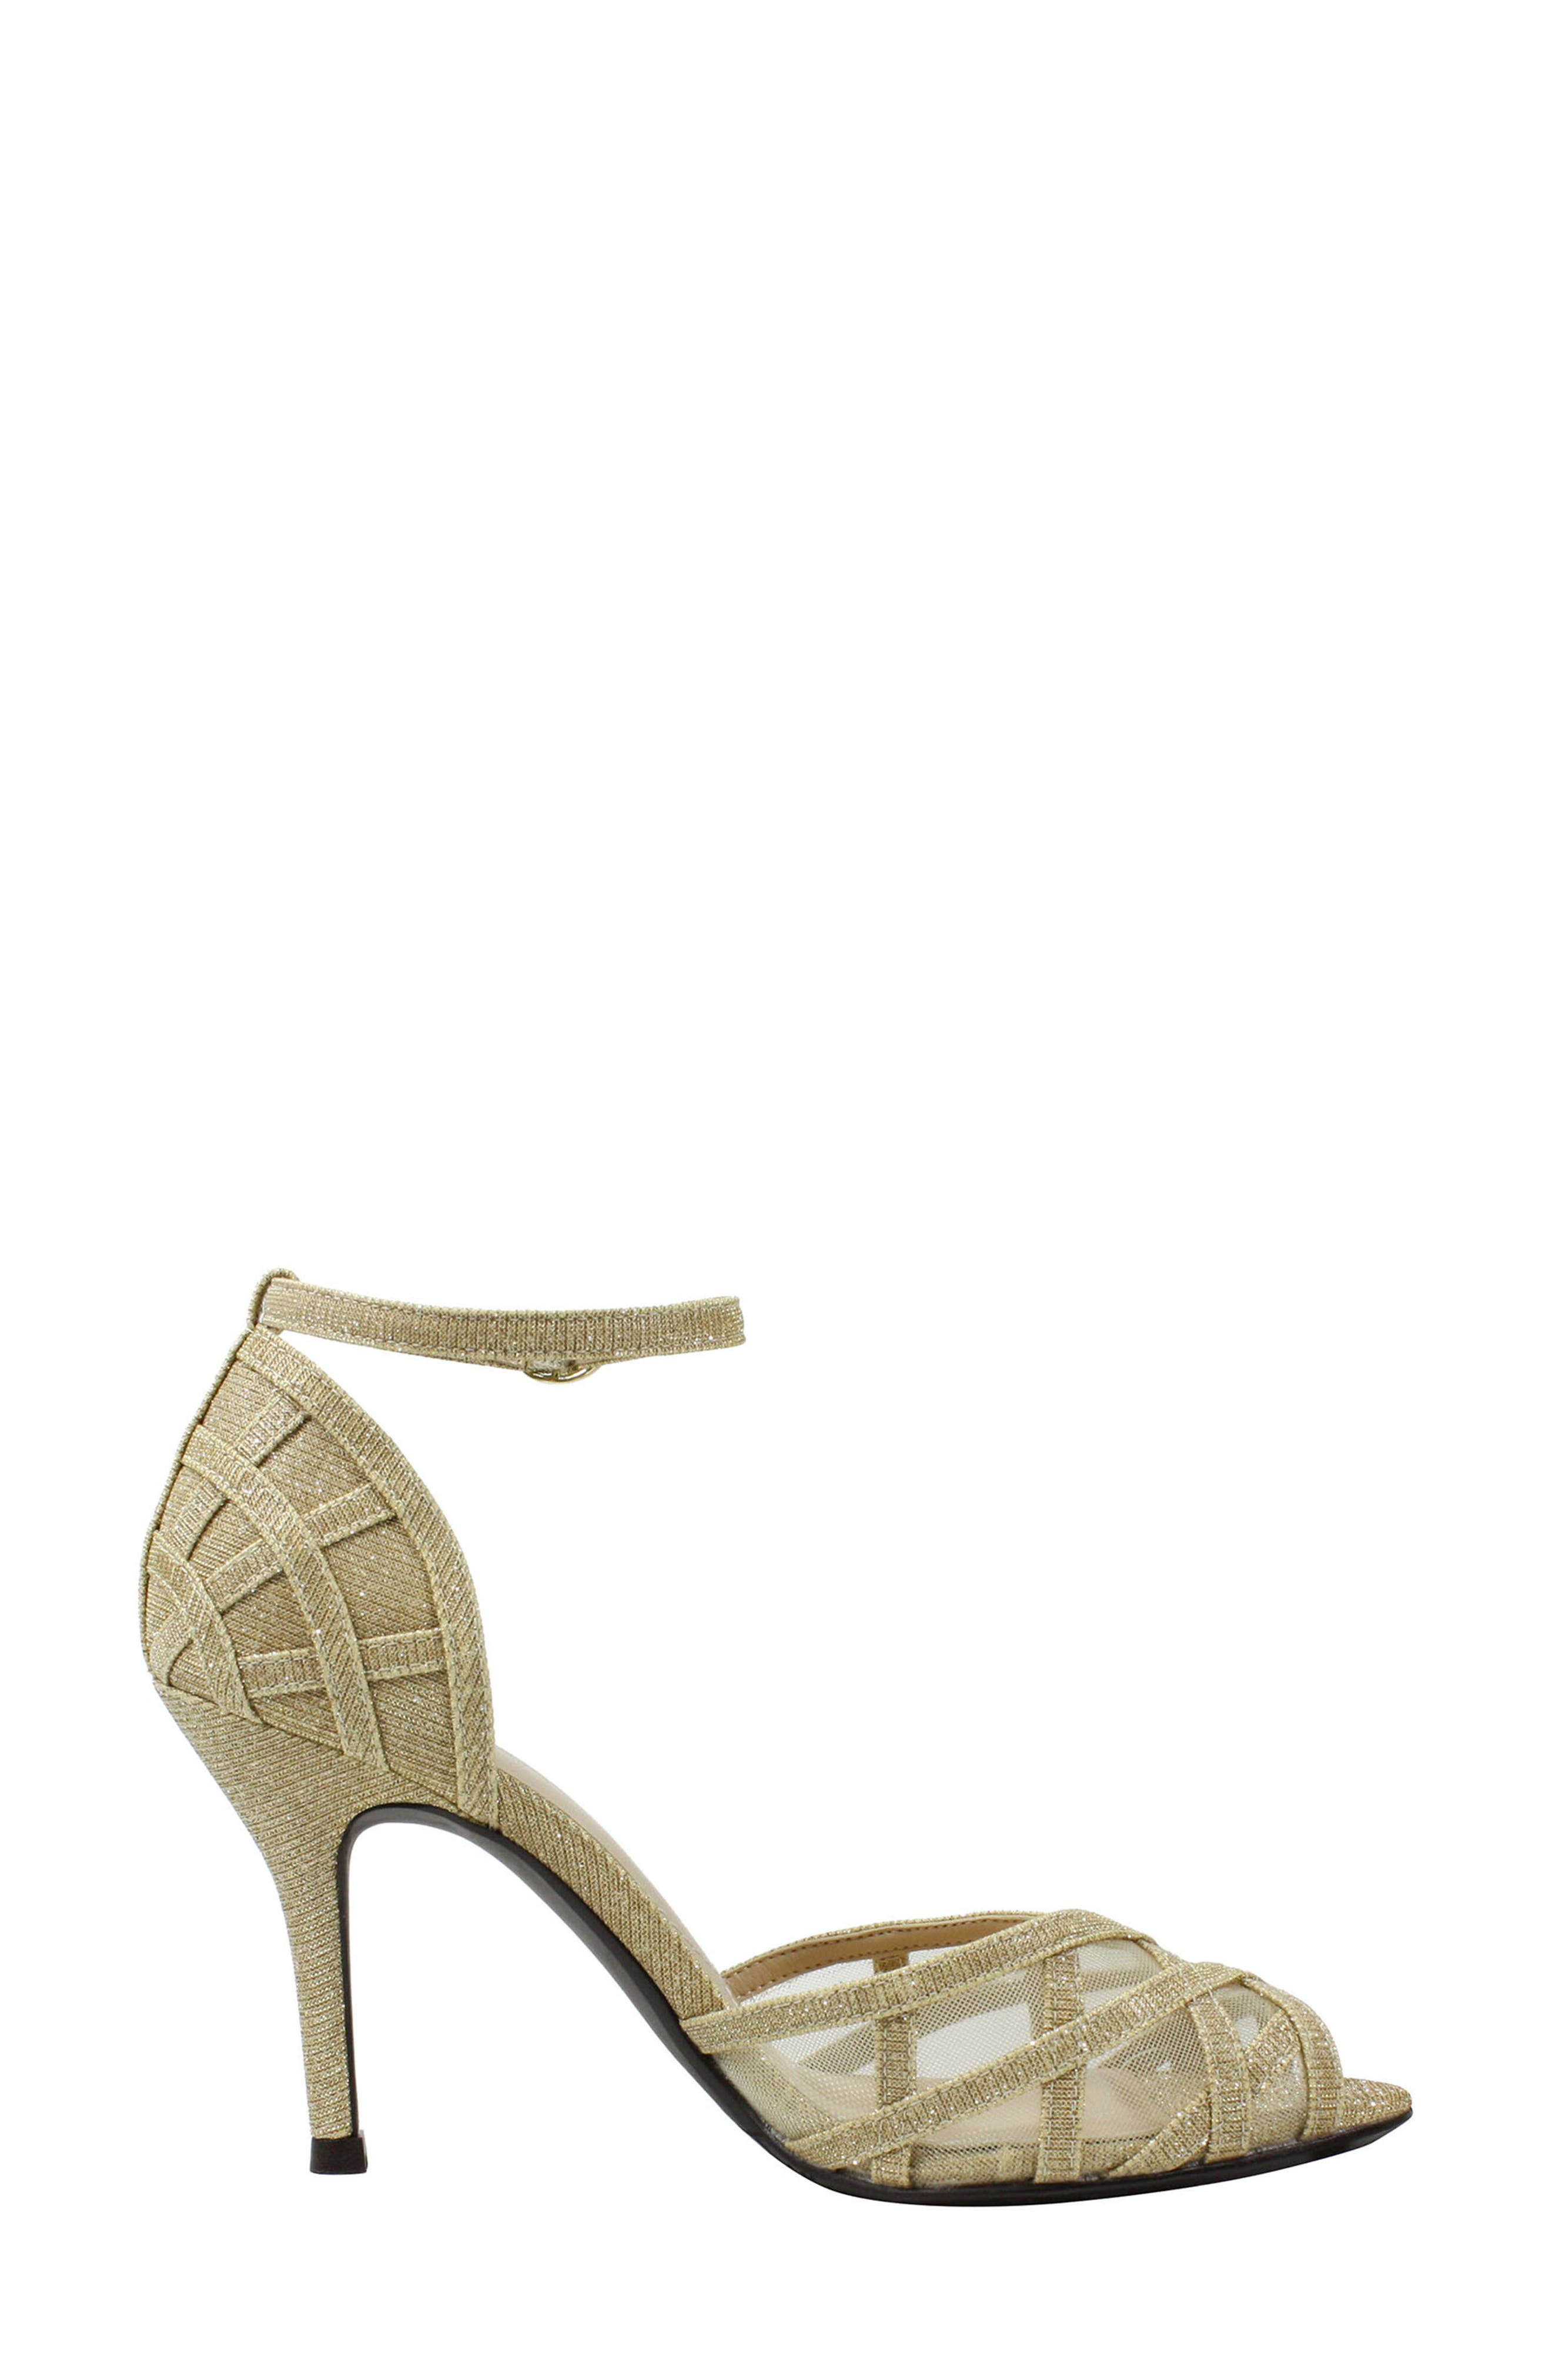 Mataro Embellished Ankle Strap Pump,                             Alternate thumbnail 3, color,                             Gold Fabric